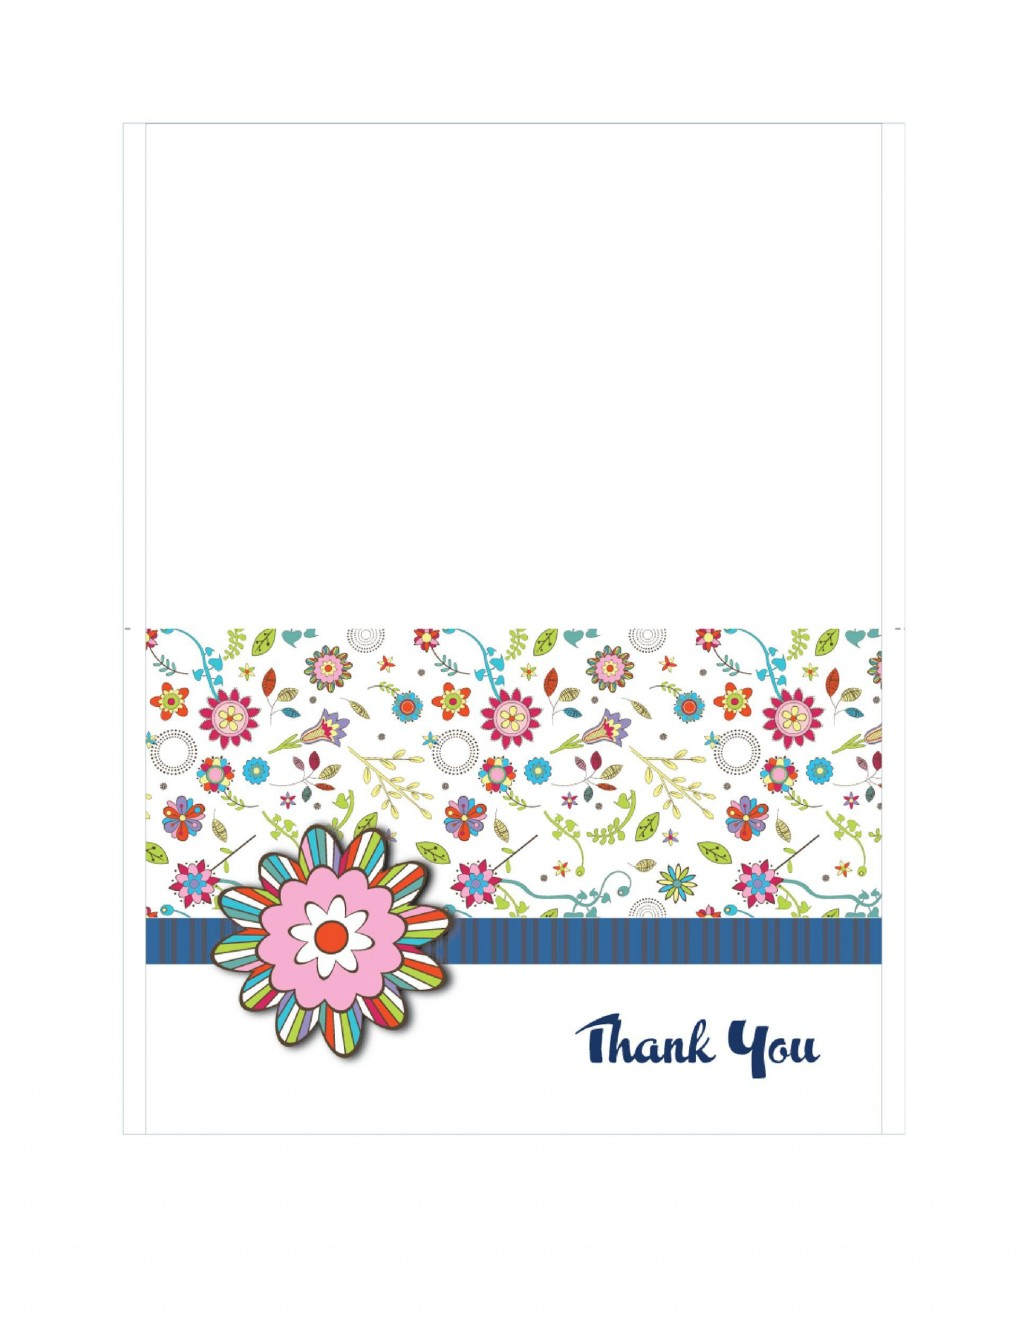 008 Amazing Free Thank You Card Template Design  Google Doc For Funeral Microsoft WordLarge